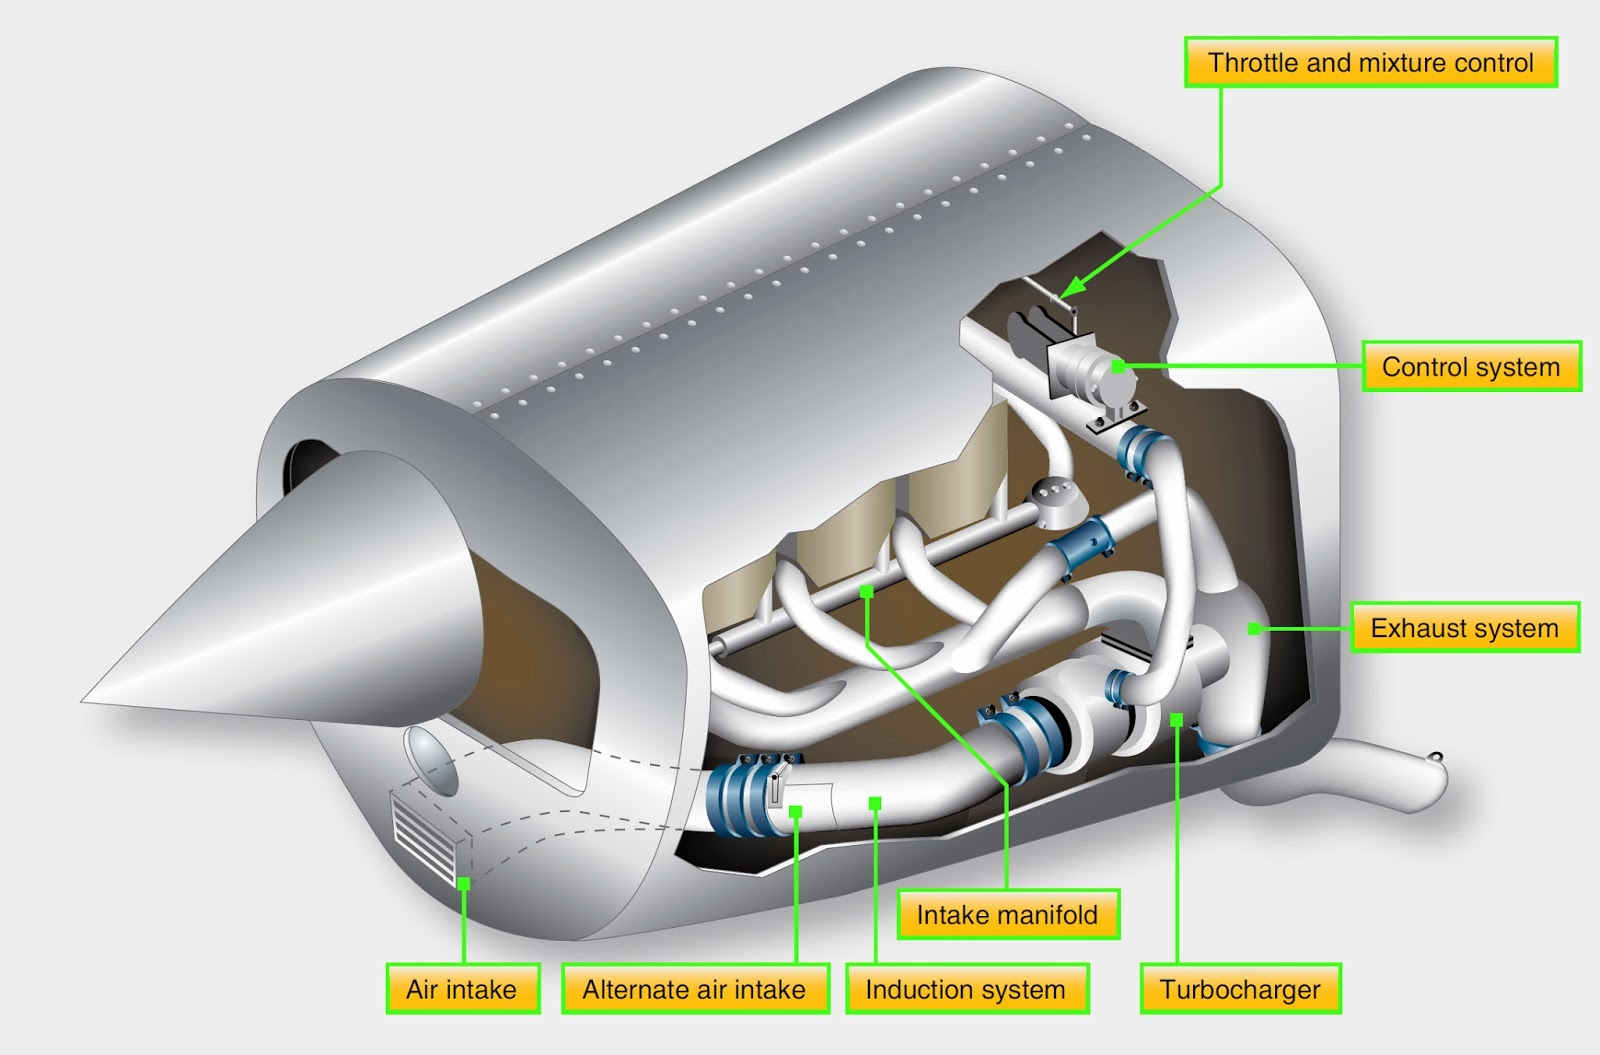 medium resolution of typical location of the air induction and exhaust systems of a normalizing turbocharger system